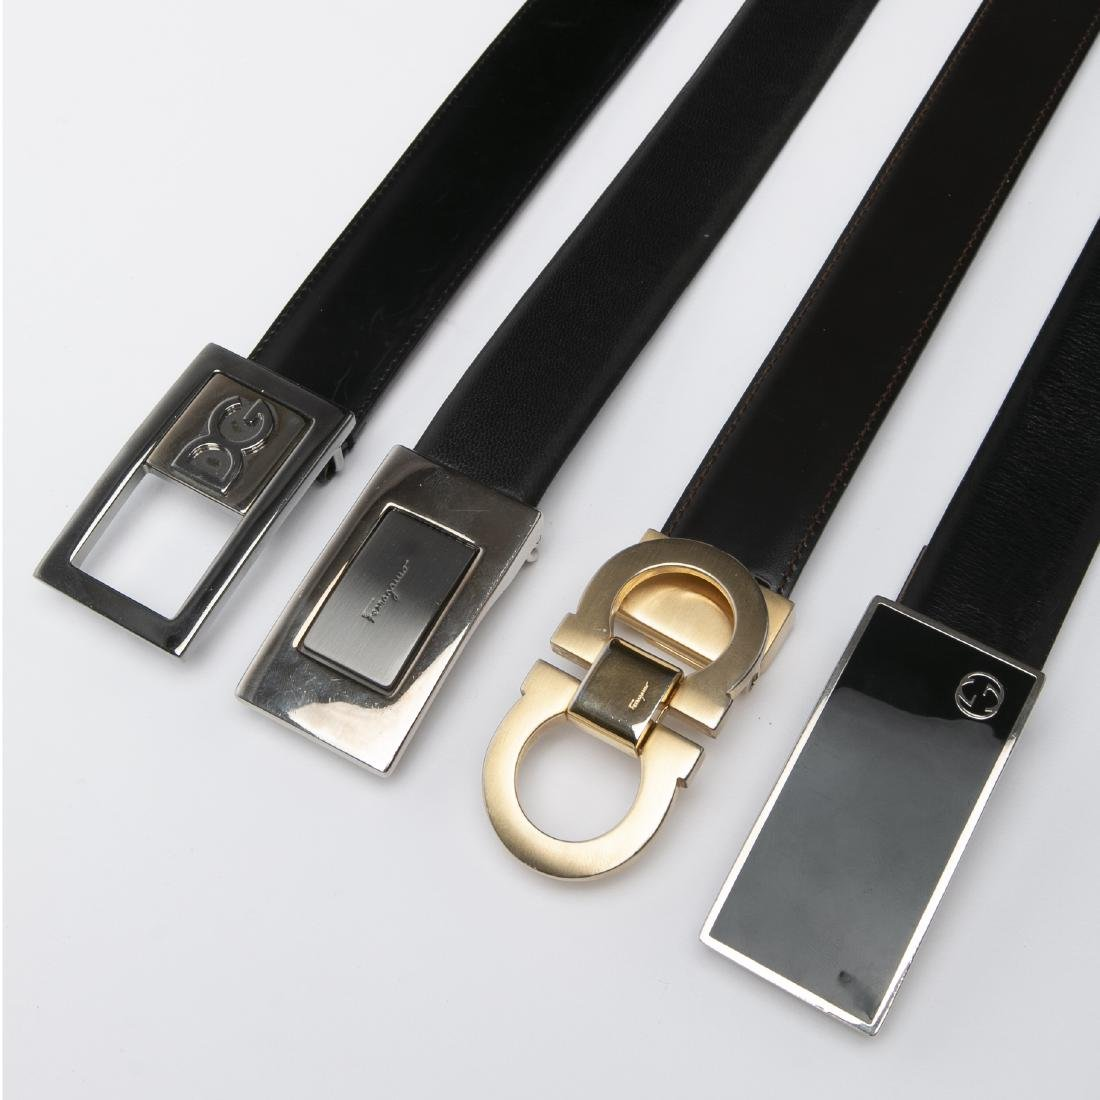 LOT OF MEN'S DESIGNER BELTS / GUCCI / FERRAGAMO